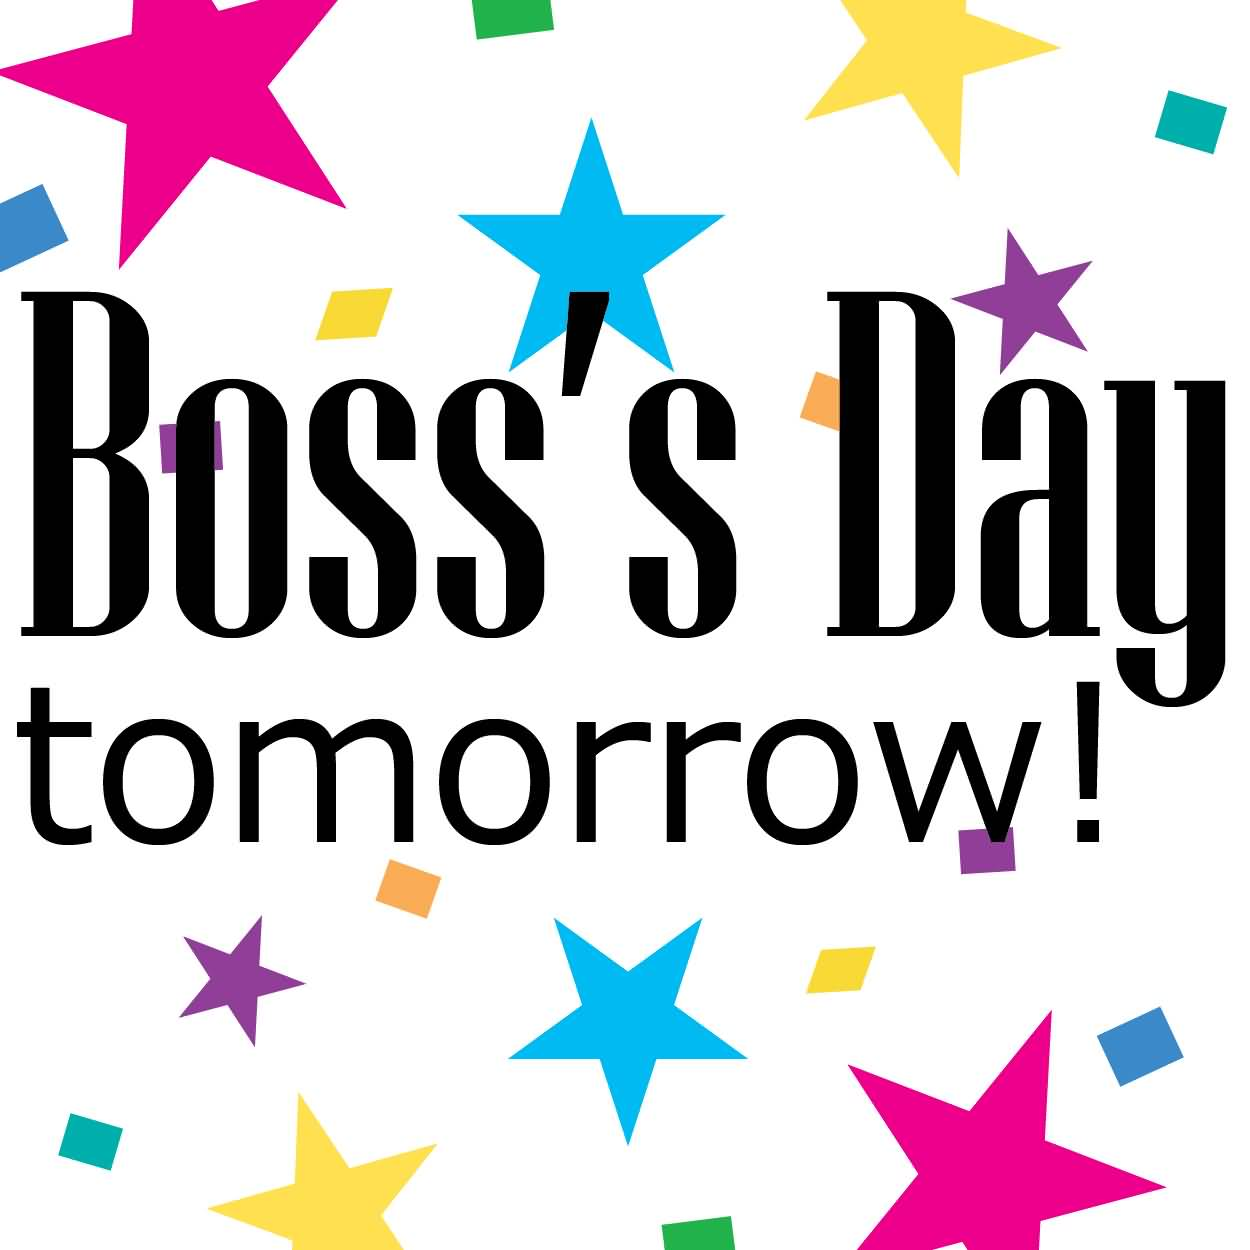 1250x1250 40 Most Beautiful Happy Boss Day 2016 Greetings Pictures And Images